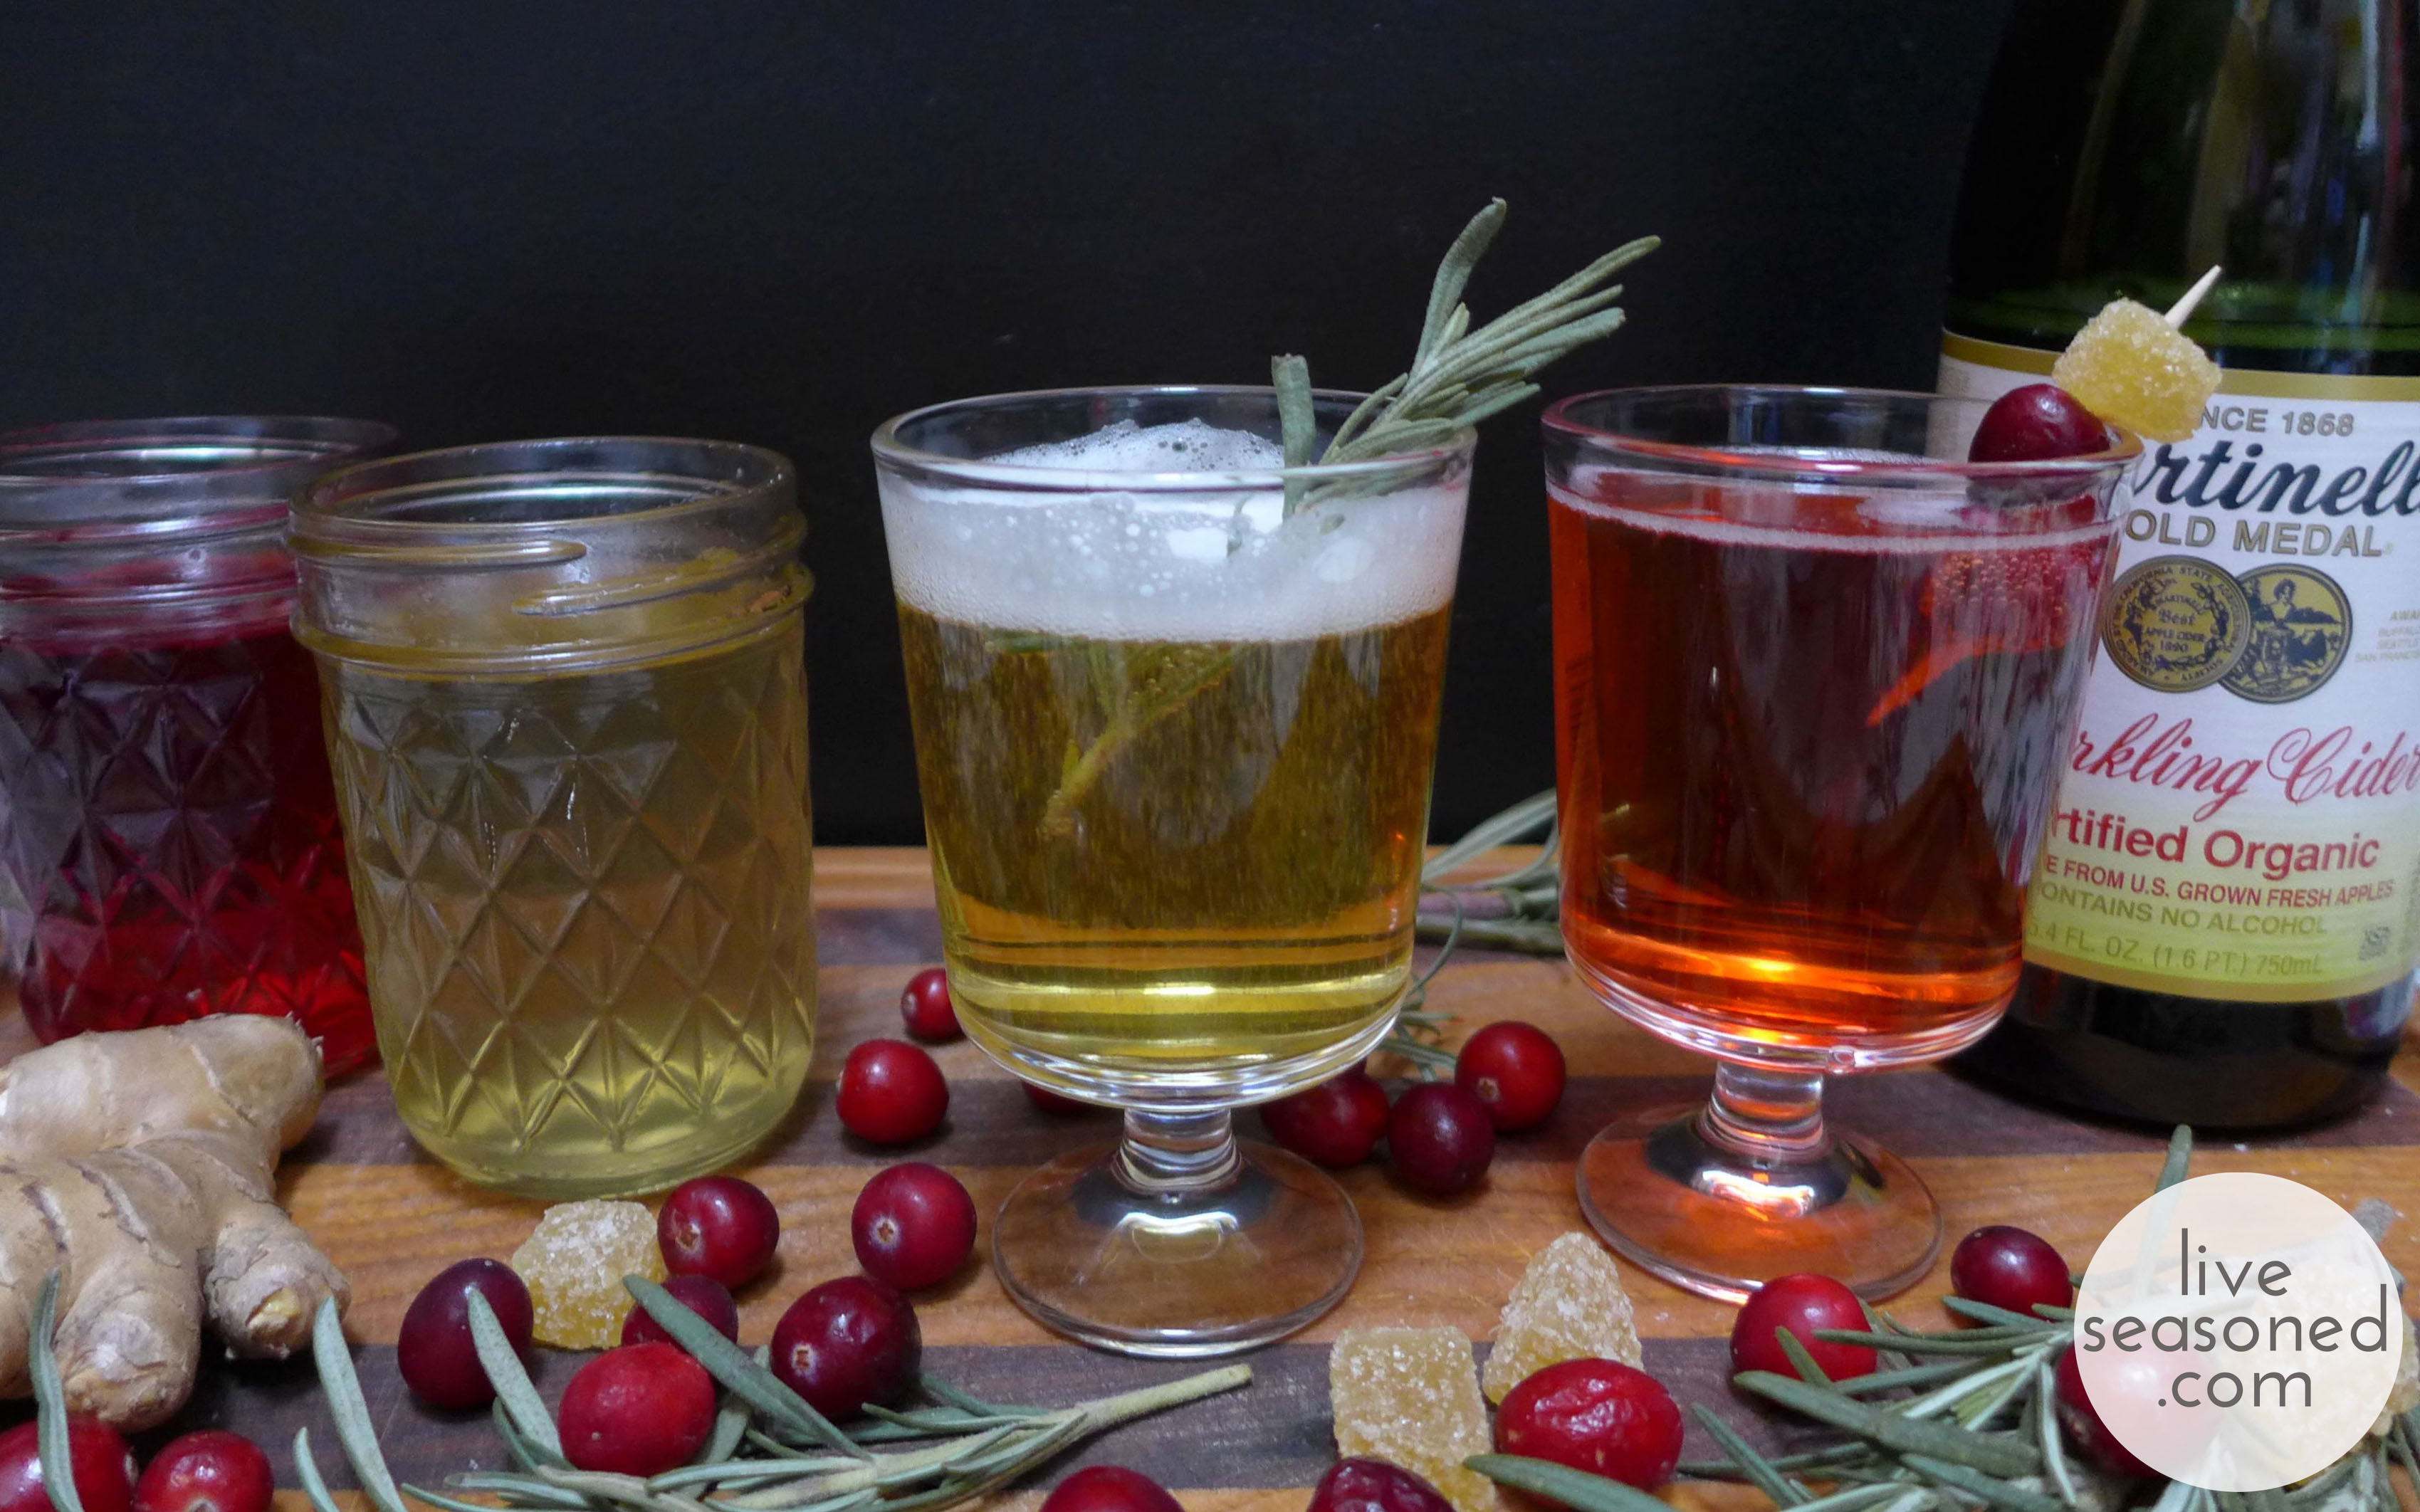 liveseasoned_fall2014_thanksgivingmocktails7_wm